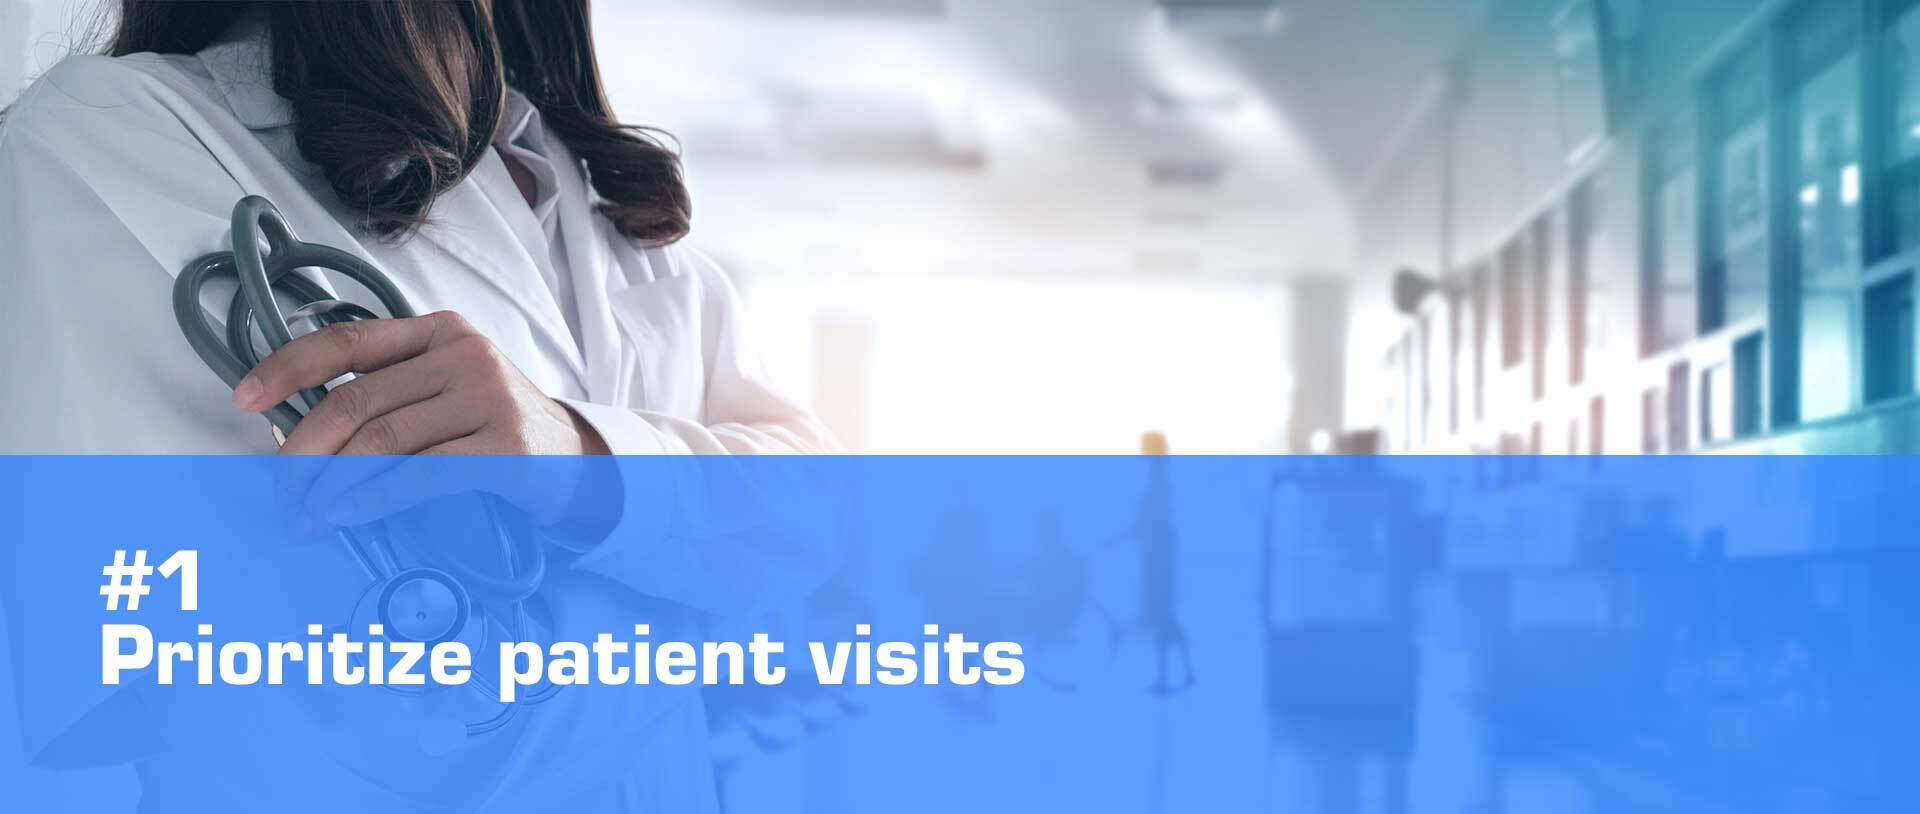 healthcare digital signage prioritize patient visits